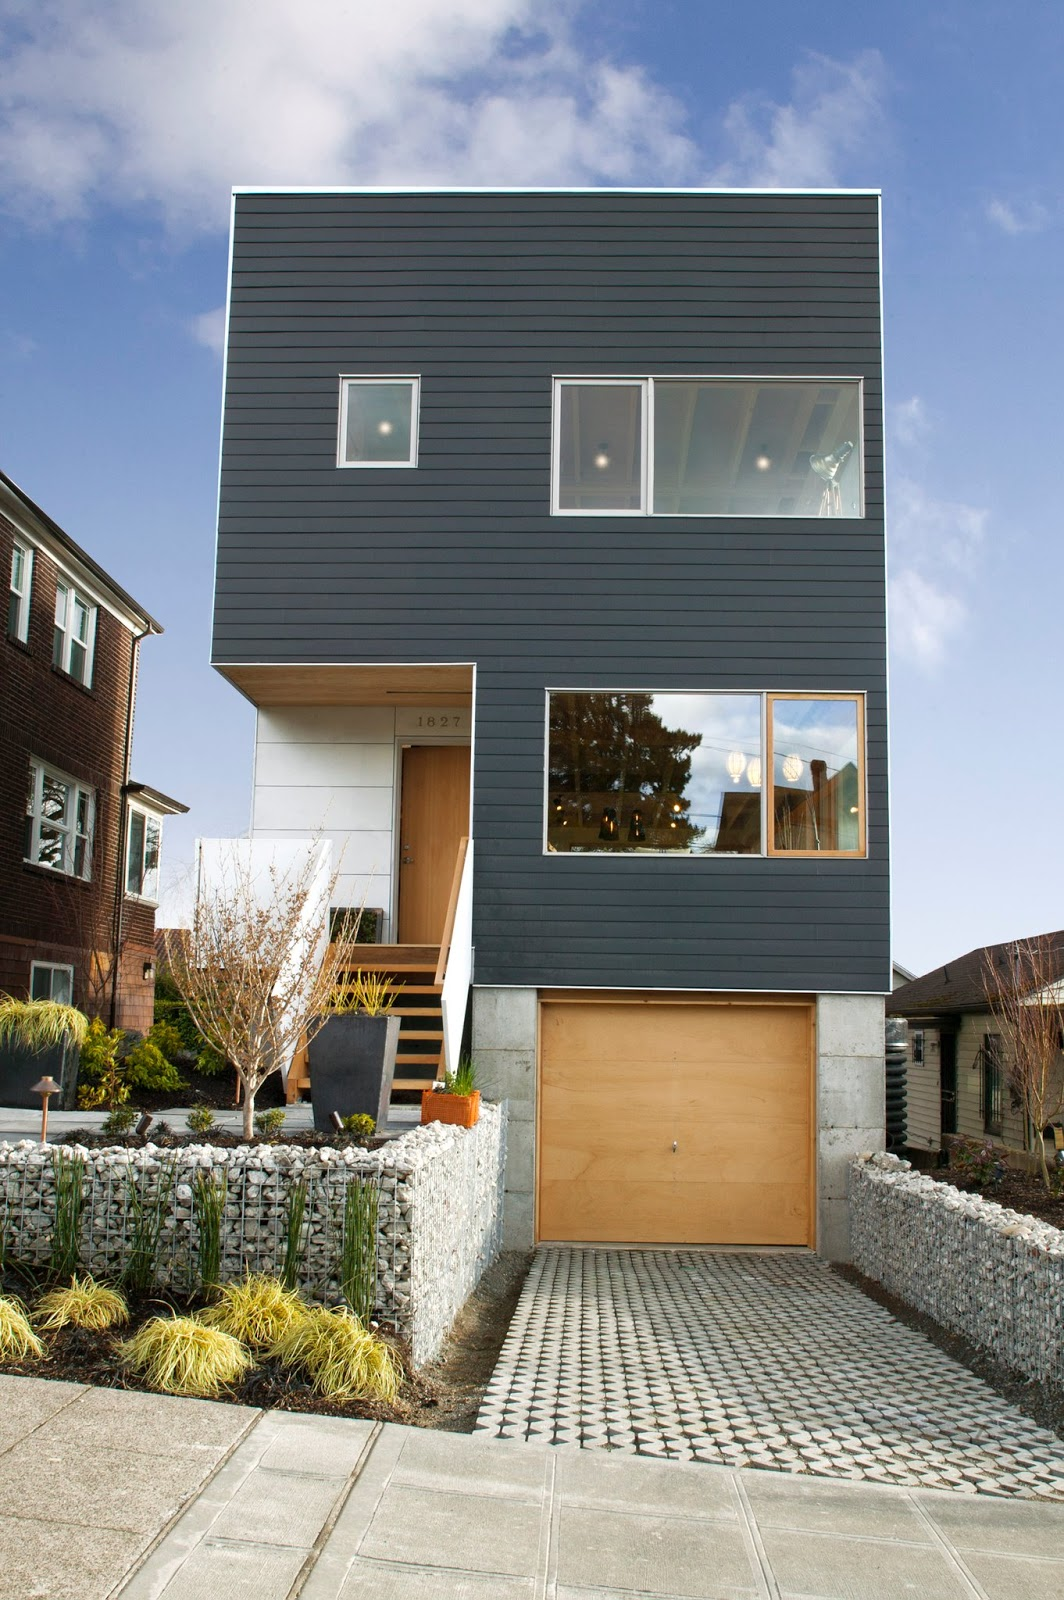 Collection 50 Beautiful Narrow House Design For A 2 Story 2 Floor